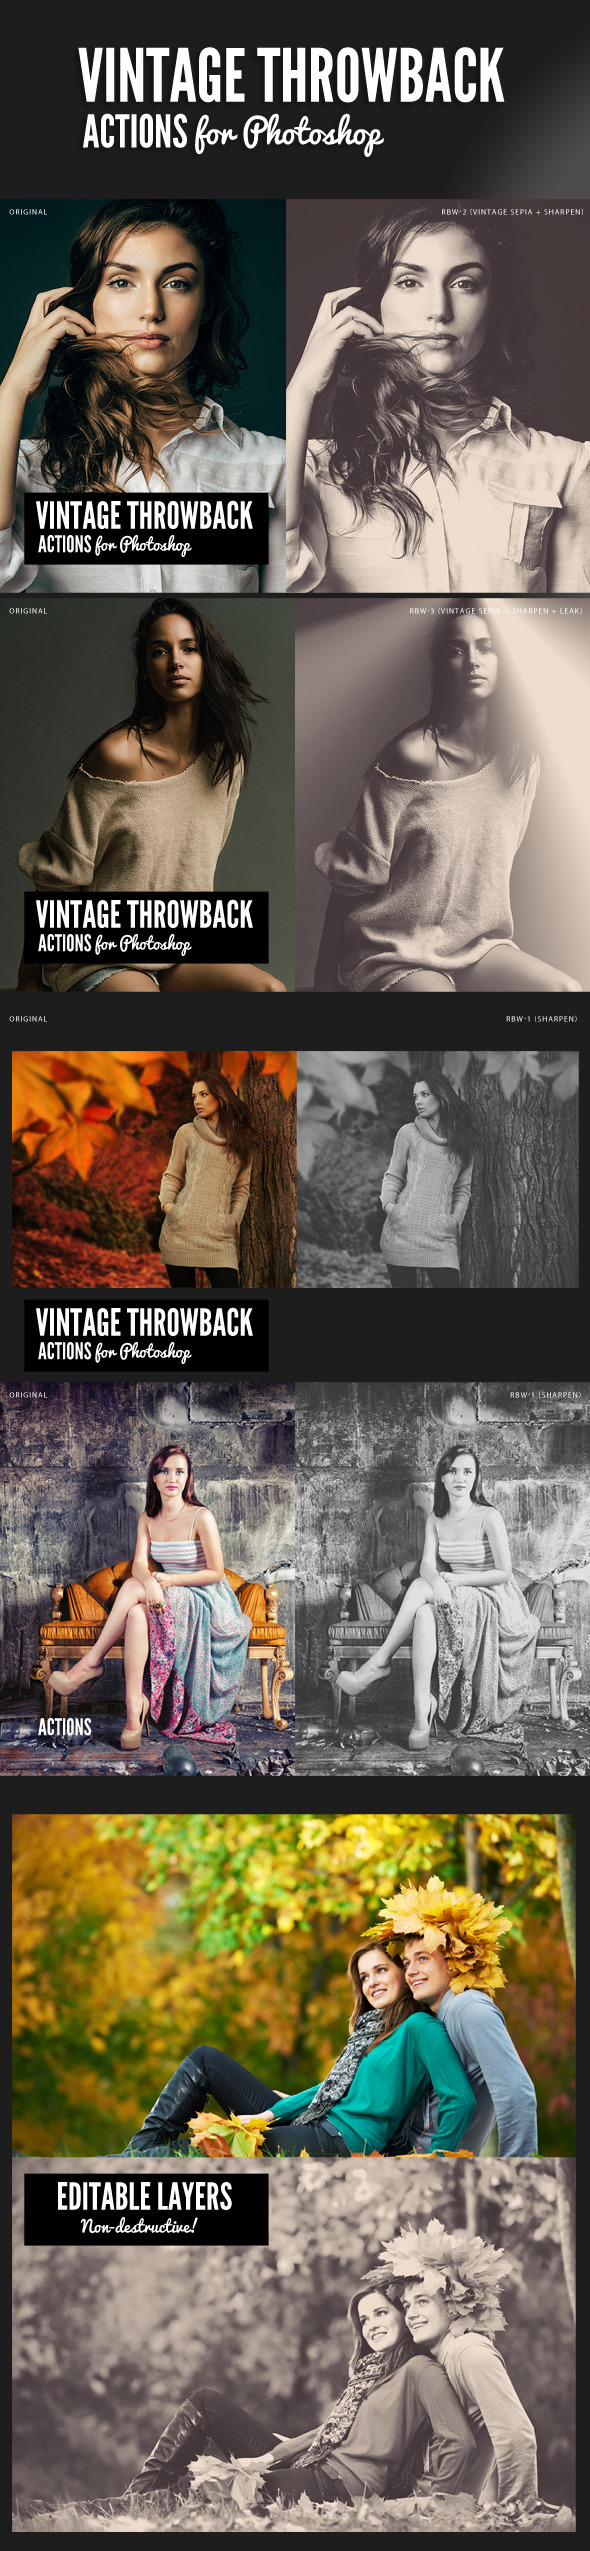 GraphicRiver Vintage Throwback Actions 9540873